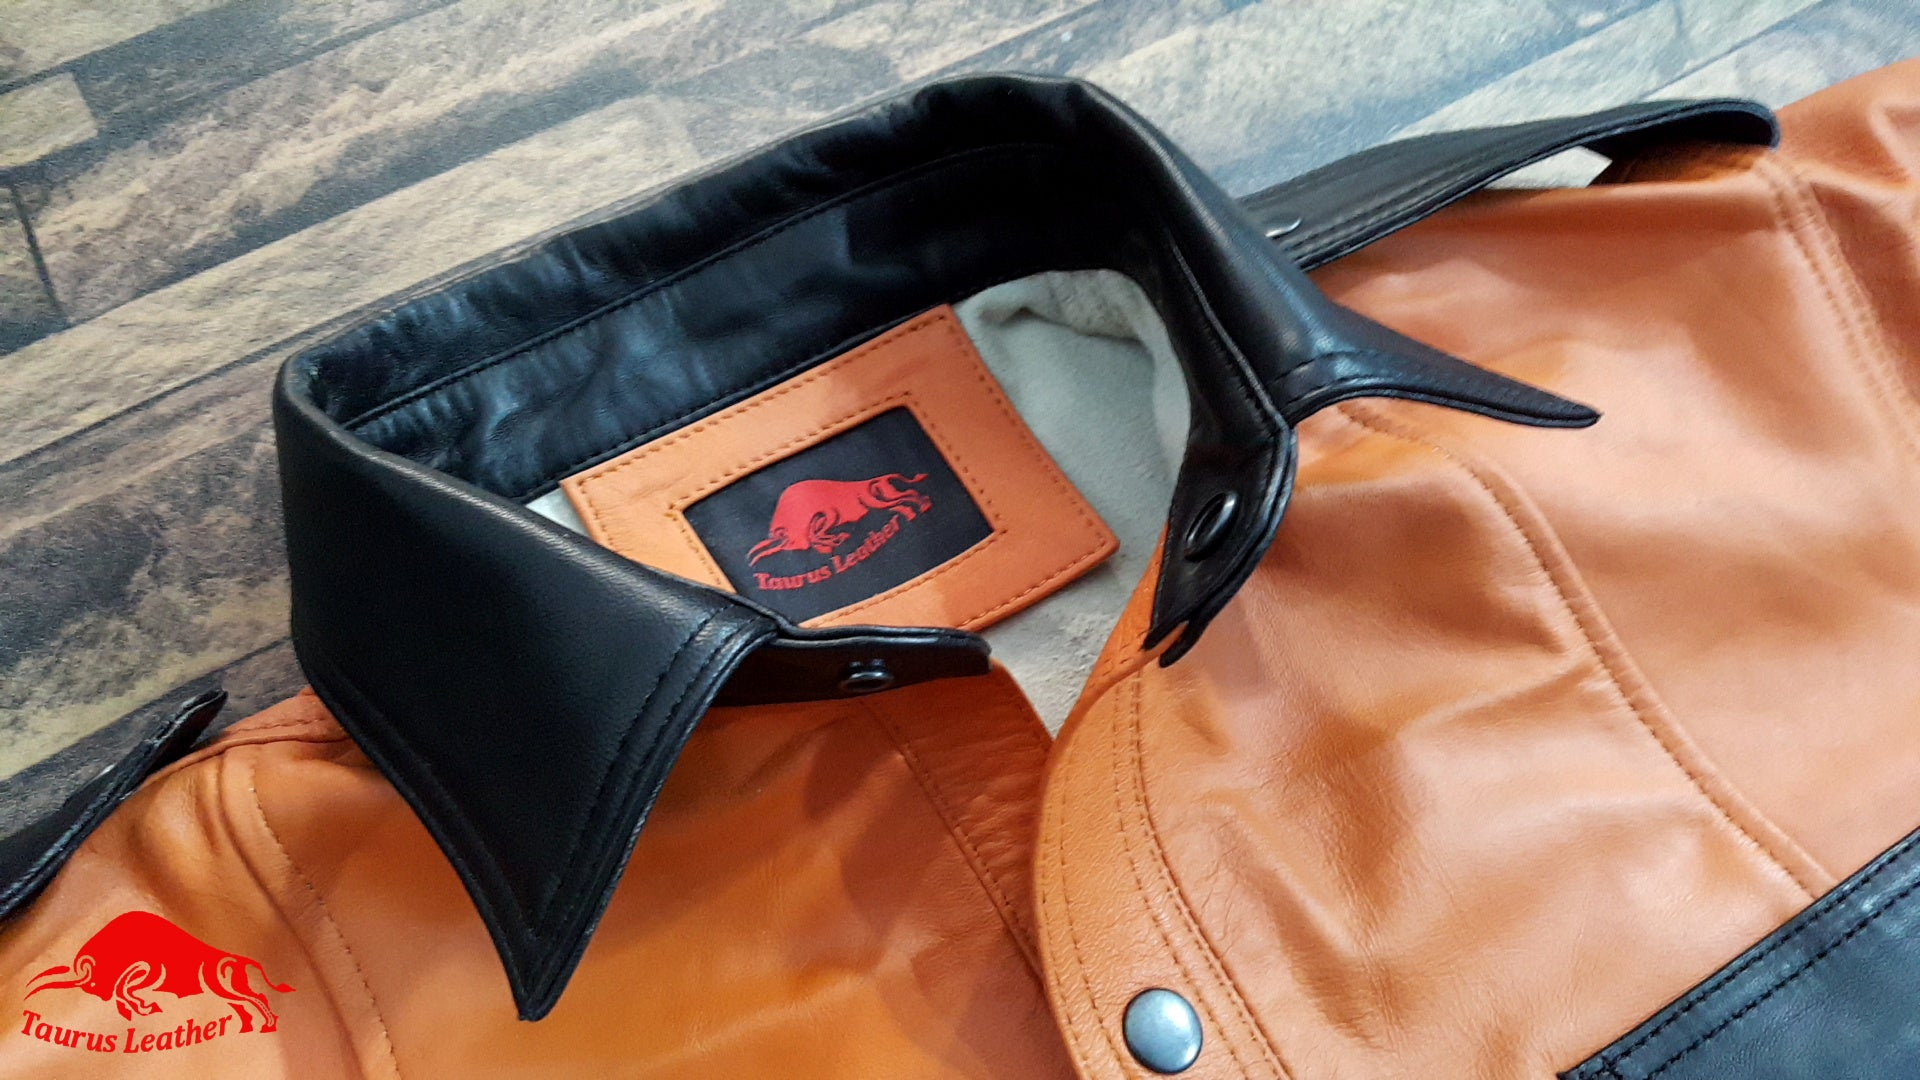 TAURUS LEATHER Orange Sheep Leather Shirt With Black Contrast